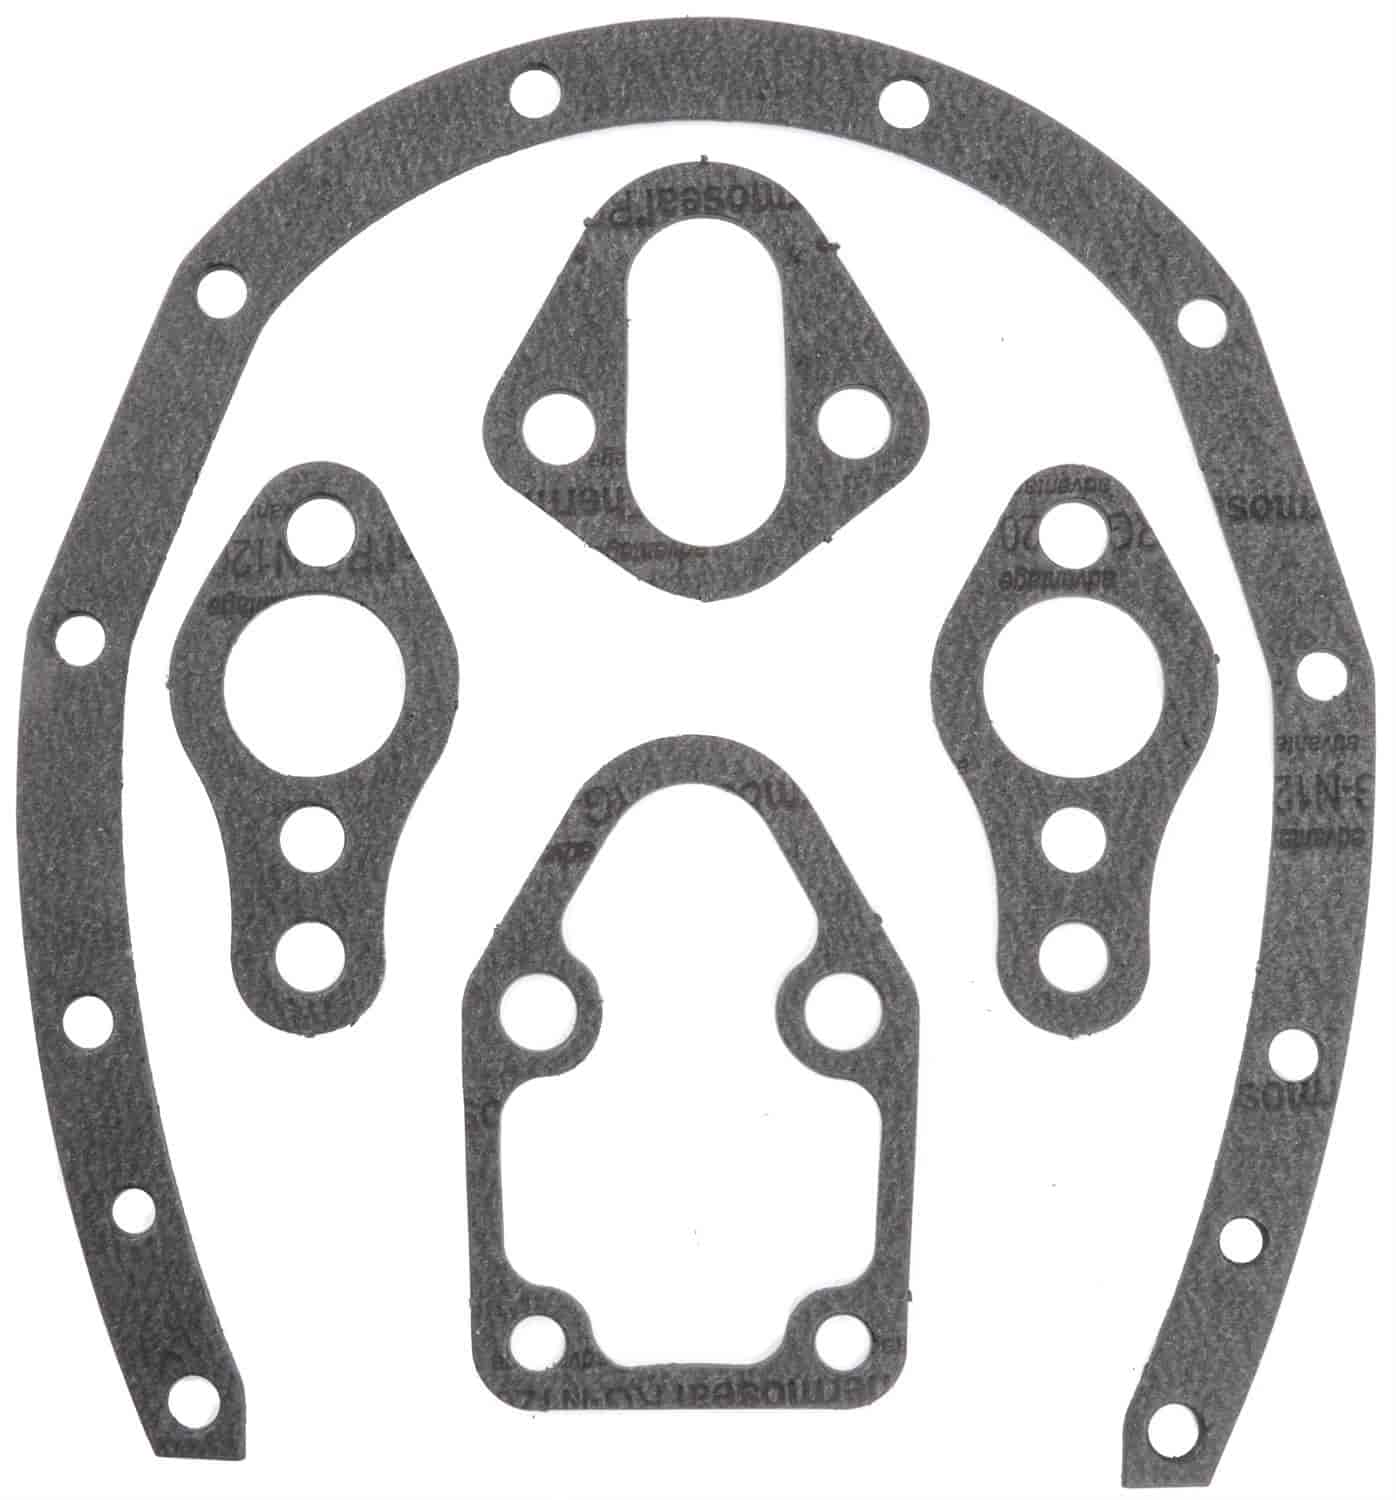 JEGS Performance Products 210065 - JEGS Timing Cover Gasket Sets